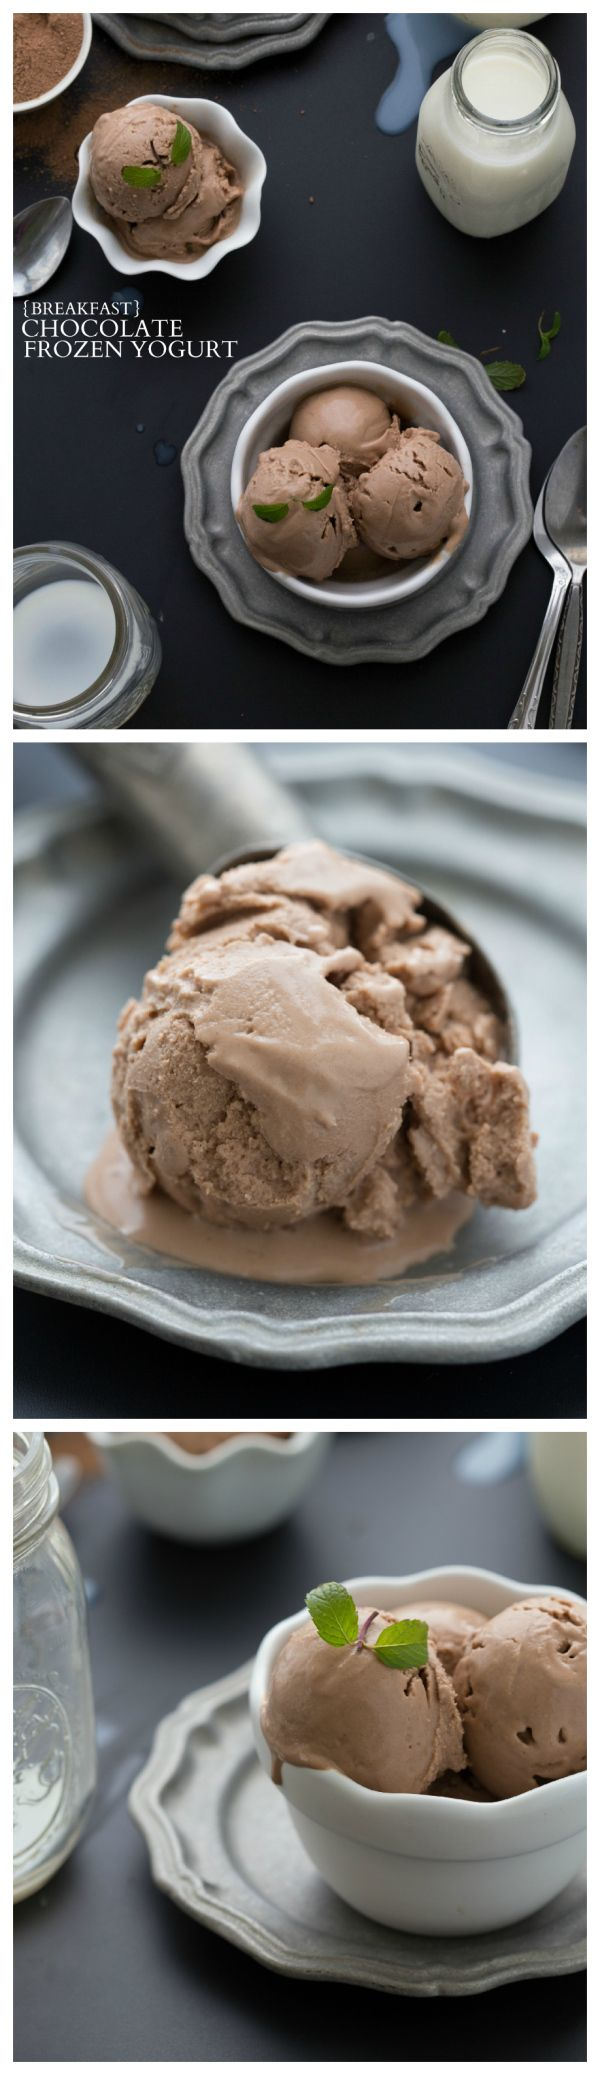 Breakfast Chocolate Frozen Yogurt I via chelseasmessyapron.com I #cleaneating #breakfast #chocolate